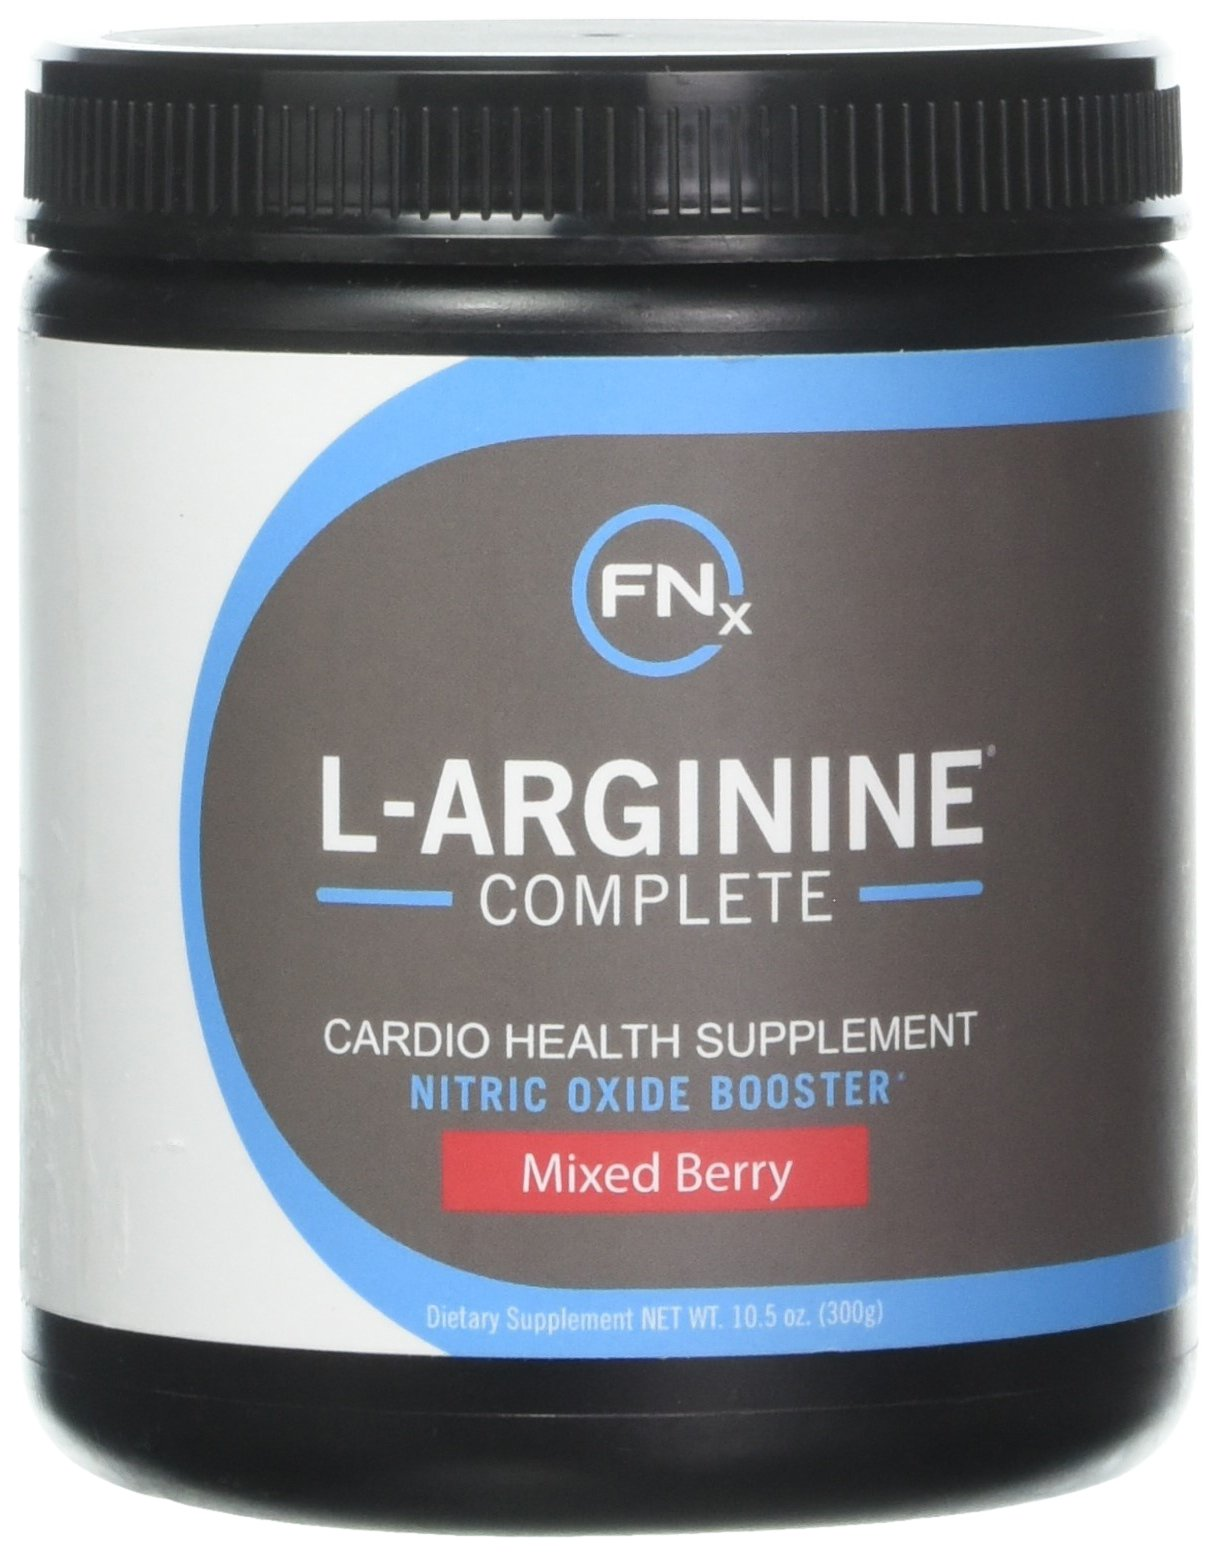 Fenix Nutrition L-Arginine Complete, Mixed Berry - 5000mg L Arginine Capsules reduces the risk of heart disease, Nitric Oxide Booster, Natural Supplement, Increases Energy and Endurance by Fenix Nutrition